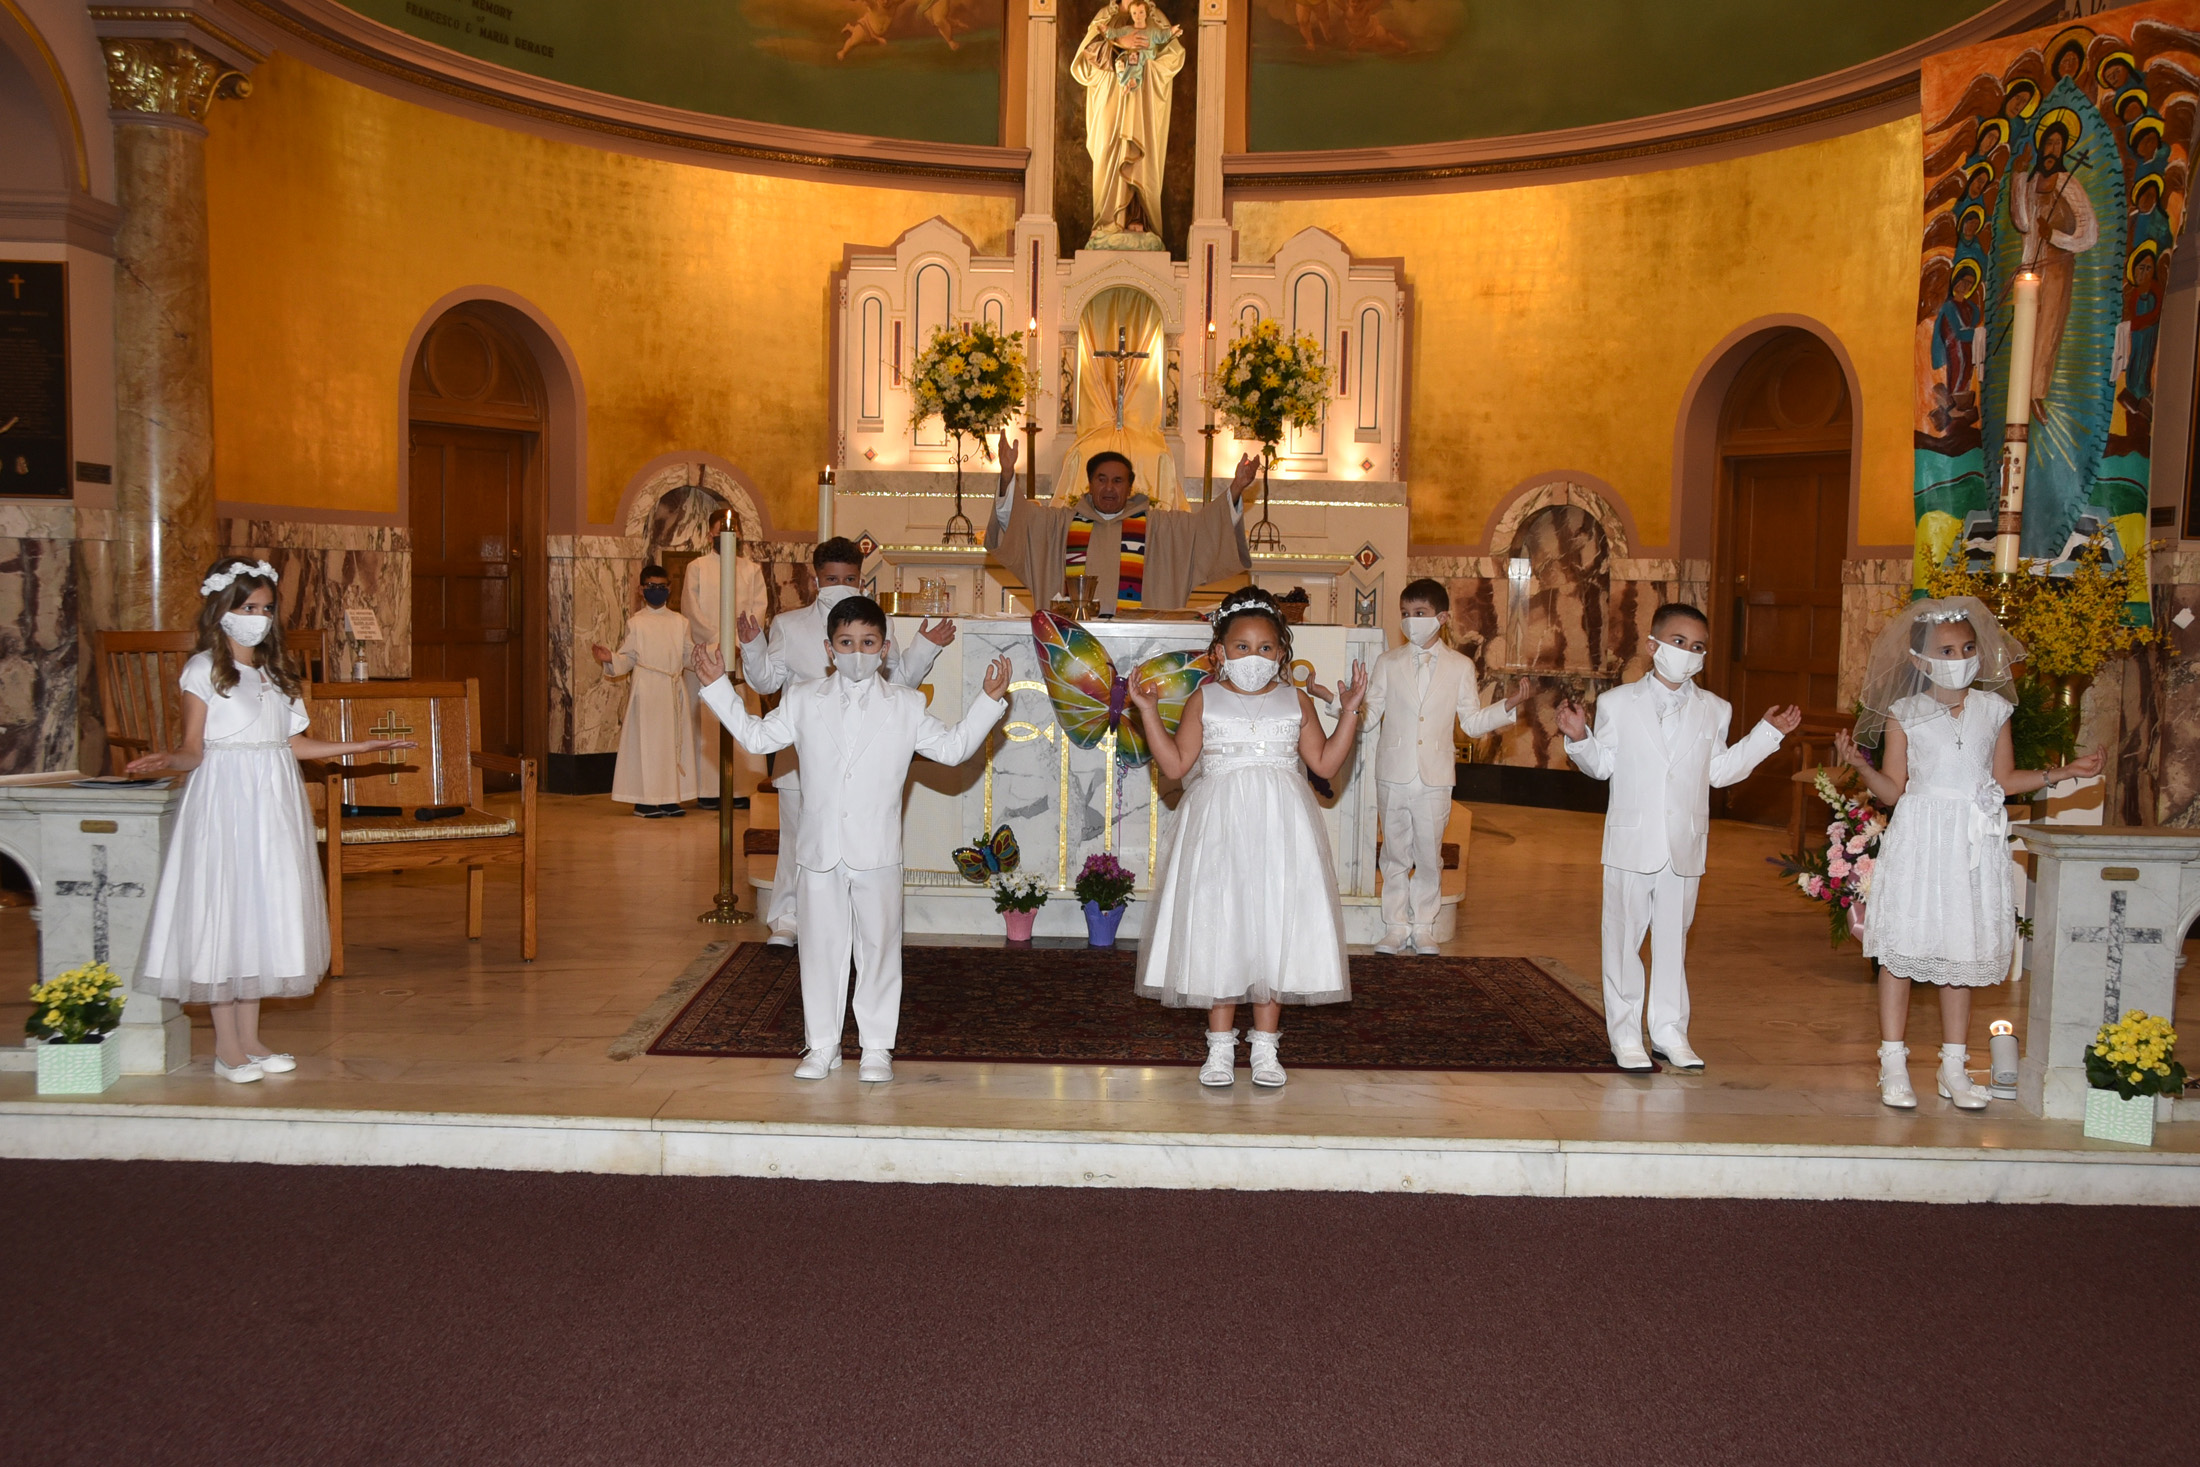 FIRST-COMMUNION-MAY-15-2021-10011099